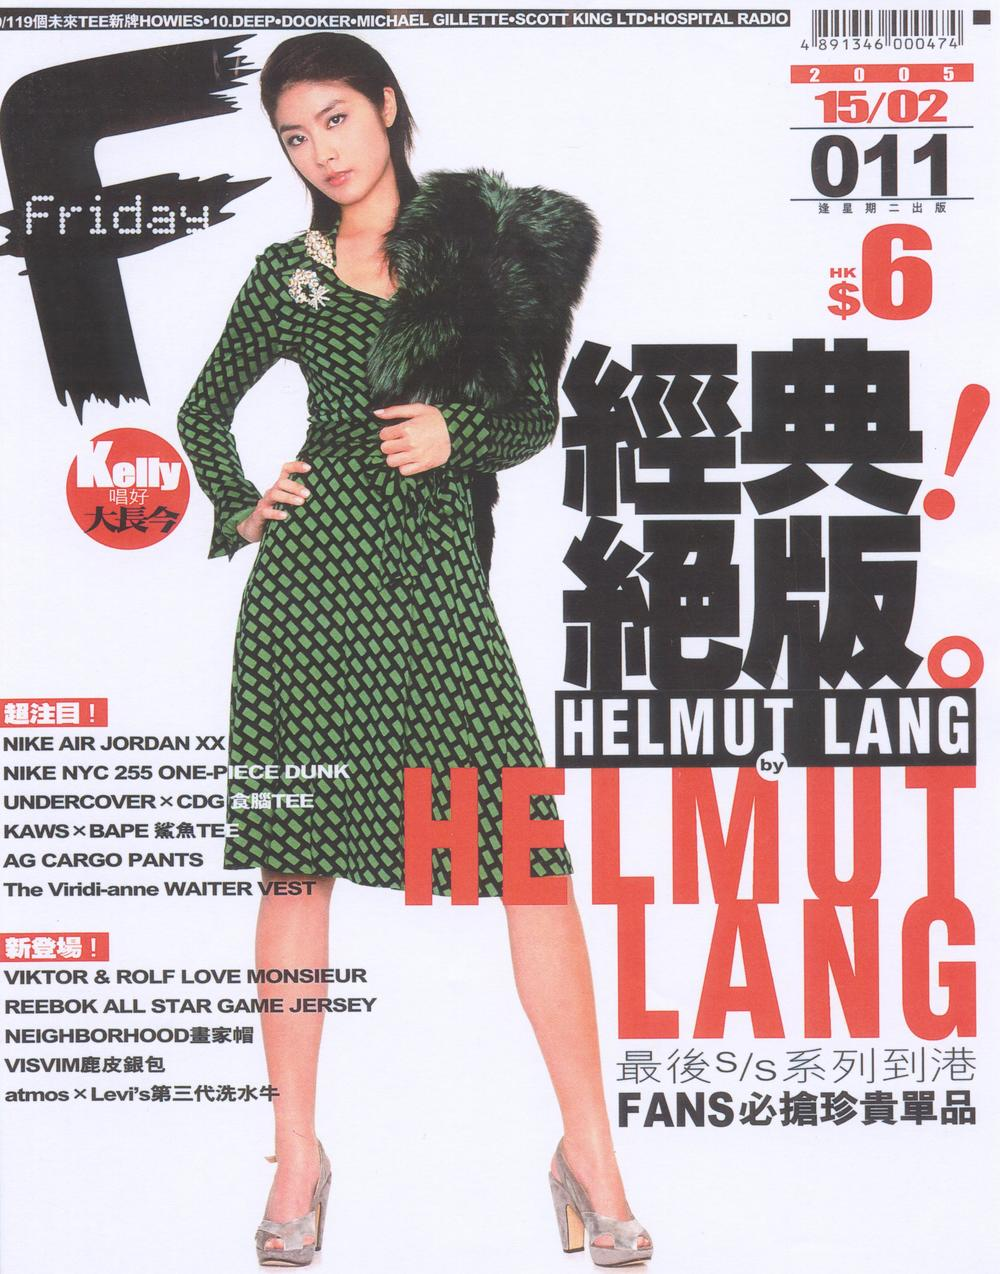 Kelly - Friday magazine cover.jpg